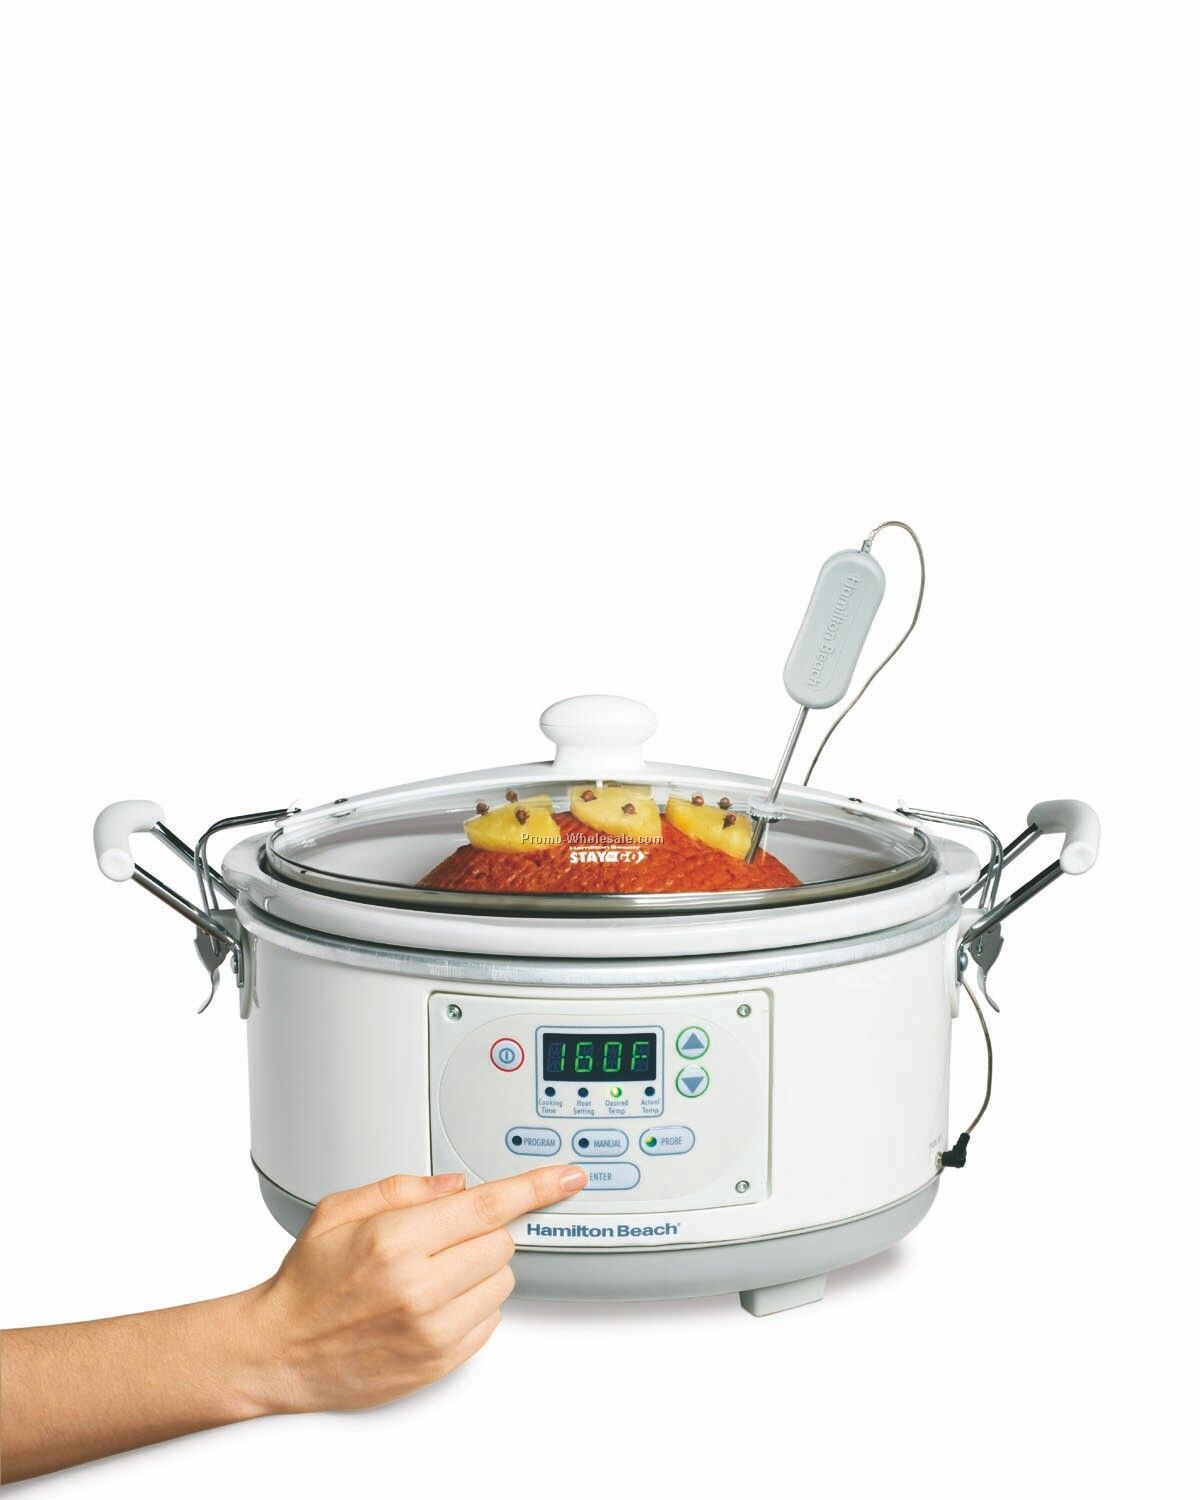 Hamilton Beach Stay-or-go 5-quart Slow Cooker